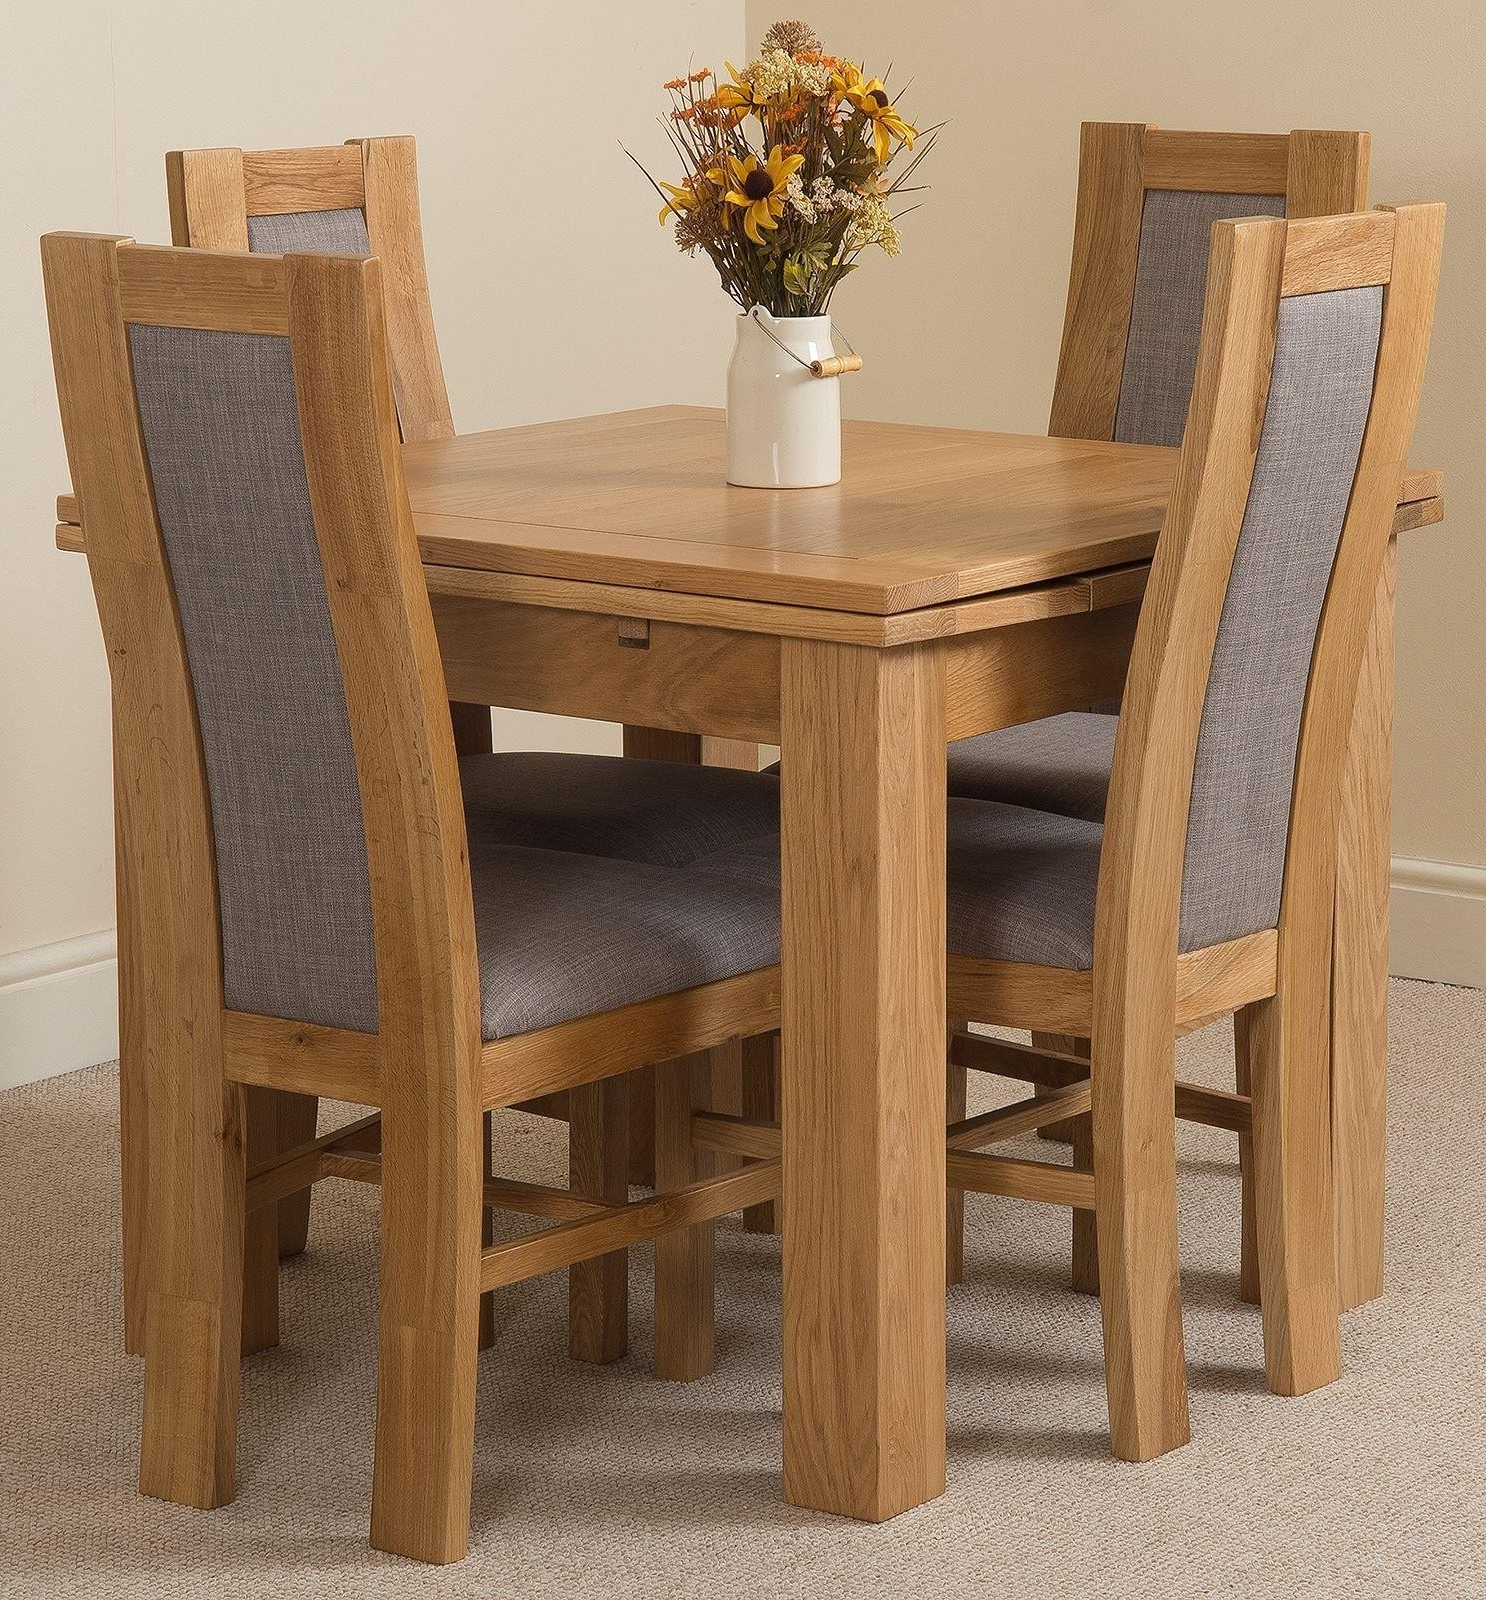 Trendy Richmond Oak Dining Set (90 150Cm) 4 Stanford Chairs Regarding Light Oak Dining Tables And Chairs (View 24 of 25)